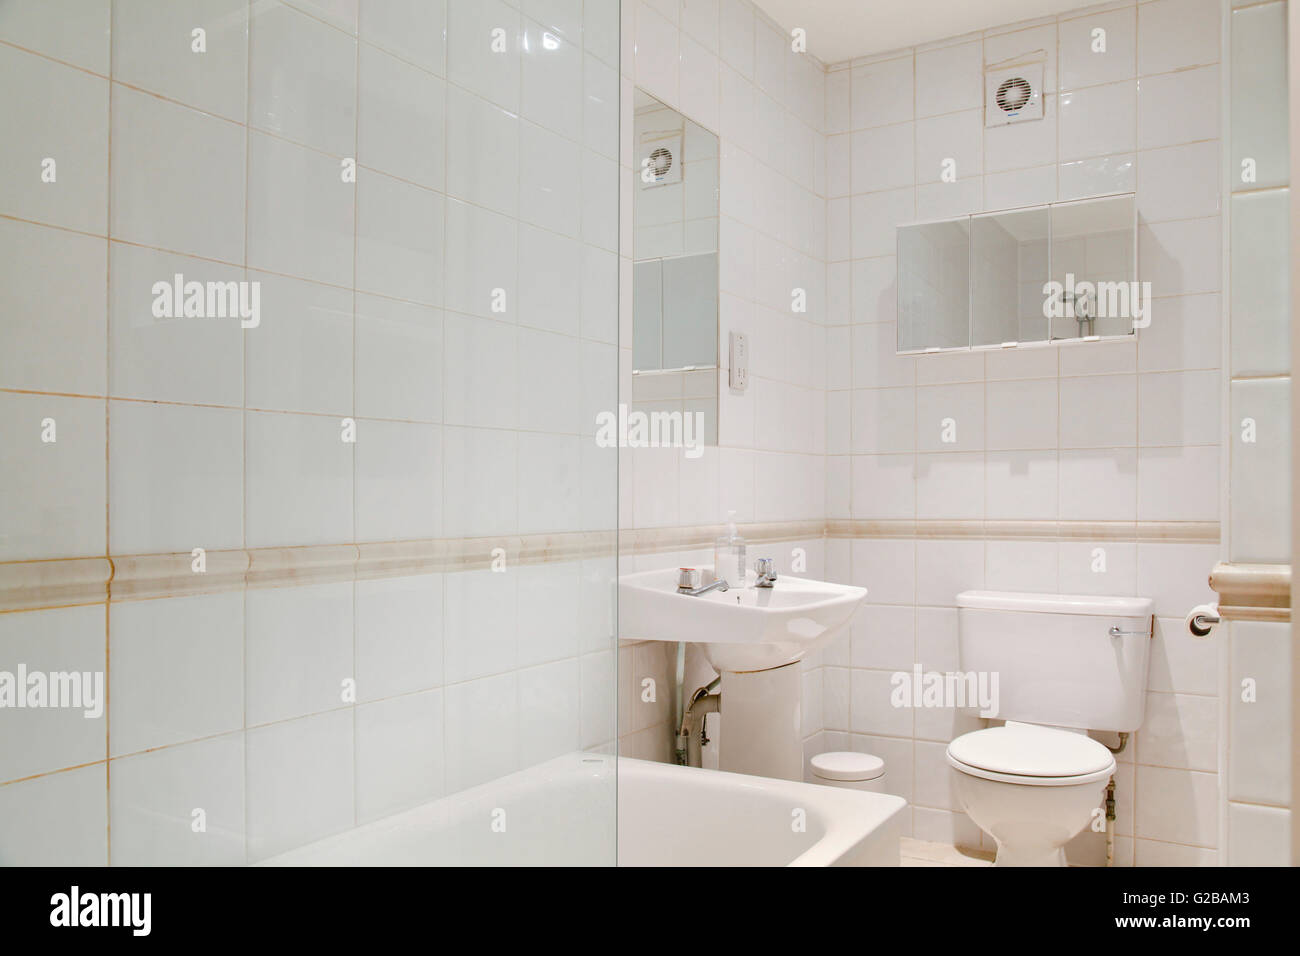 Pembridge Square, Notting Hill. View of traditional white bathroom ...